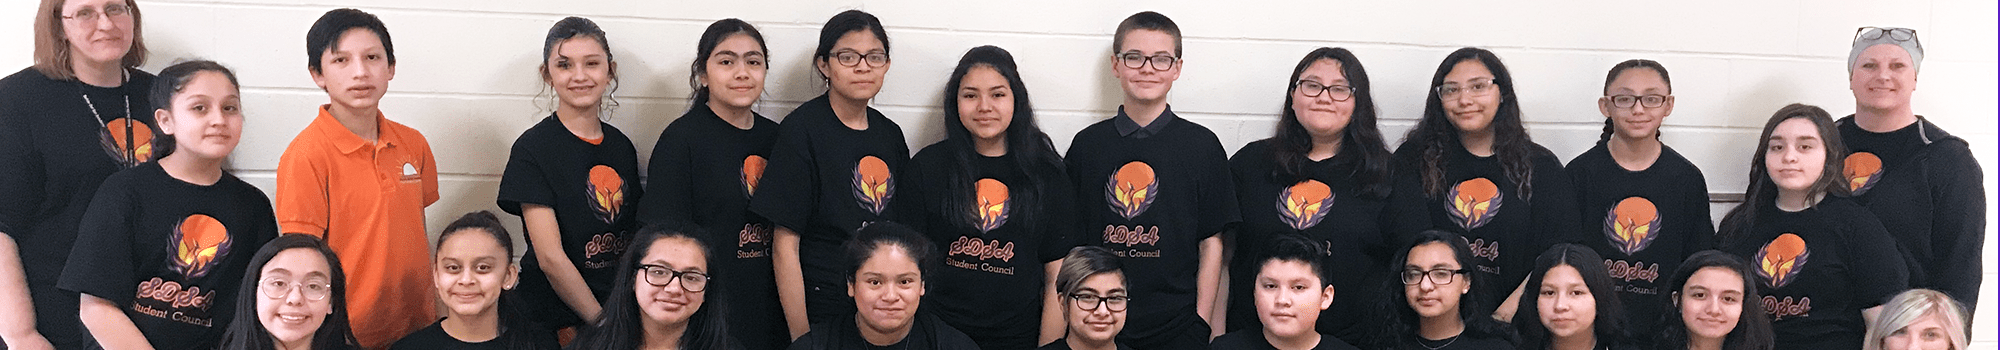 Happy Salida del Sol students posing for a picture with their teacher wearing black t-shirts